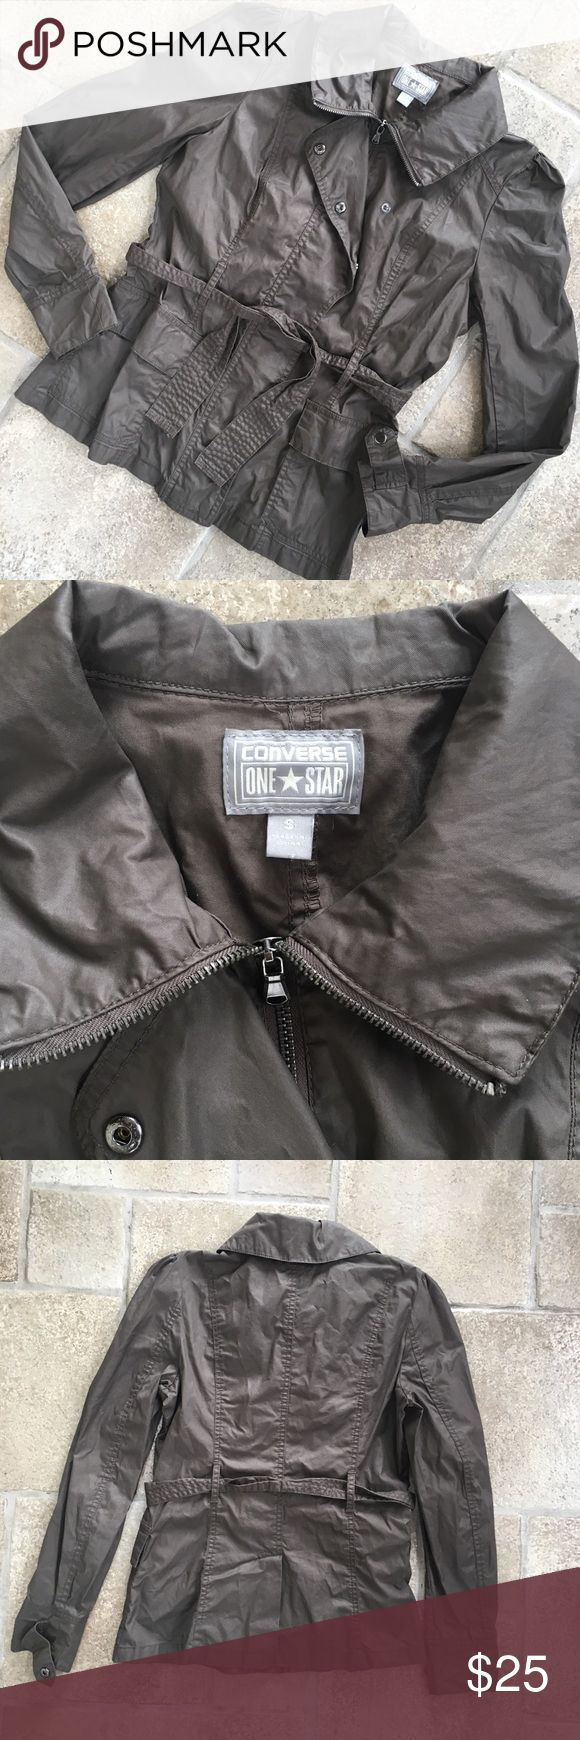 Converse Rain Jacket Converse Rain Jacket  size small worn but still in great condition  make an offer! Converse Jackets & Coats